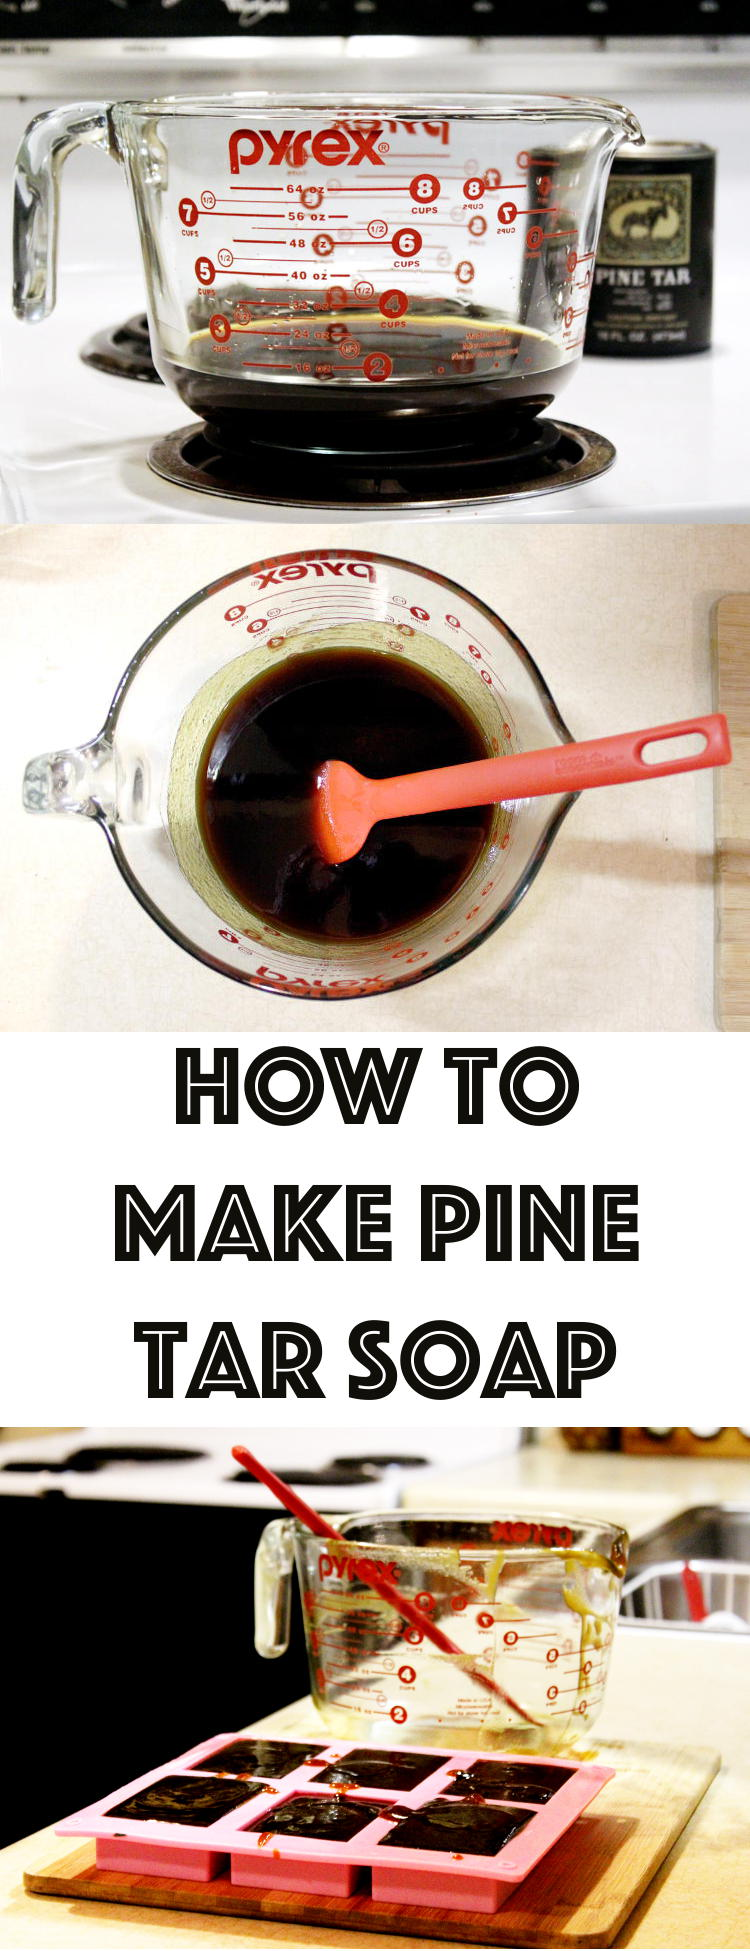 Pine Tar Soap Recipe for Psoriasis, Eczema and Other Skin